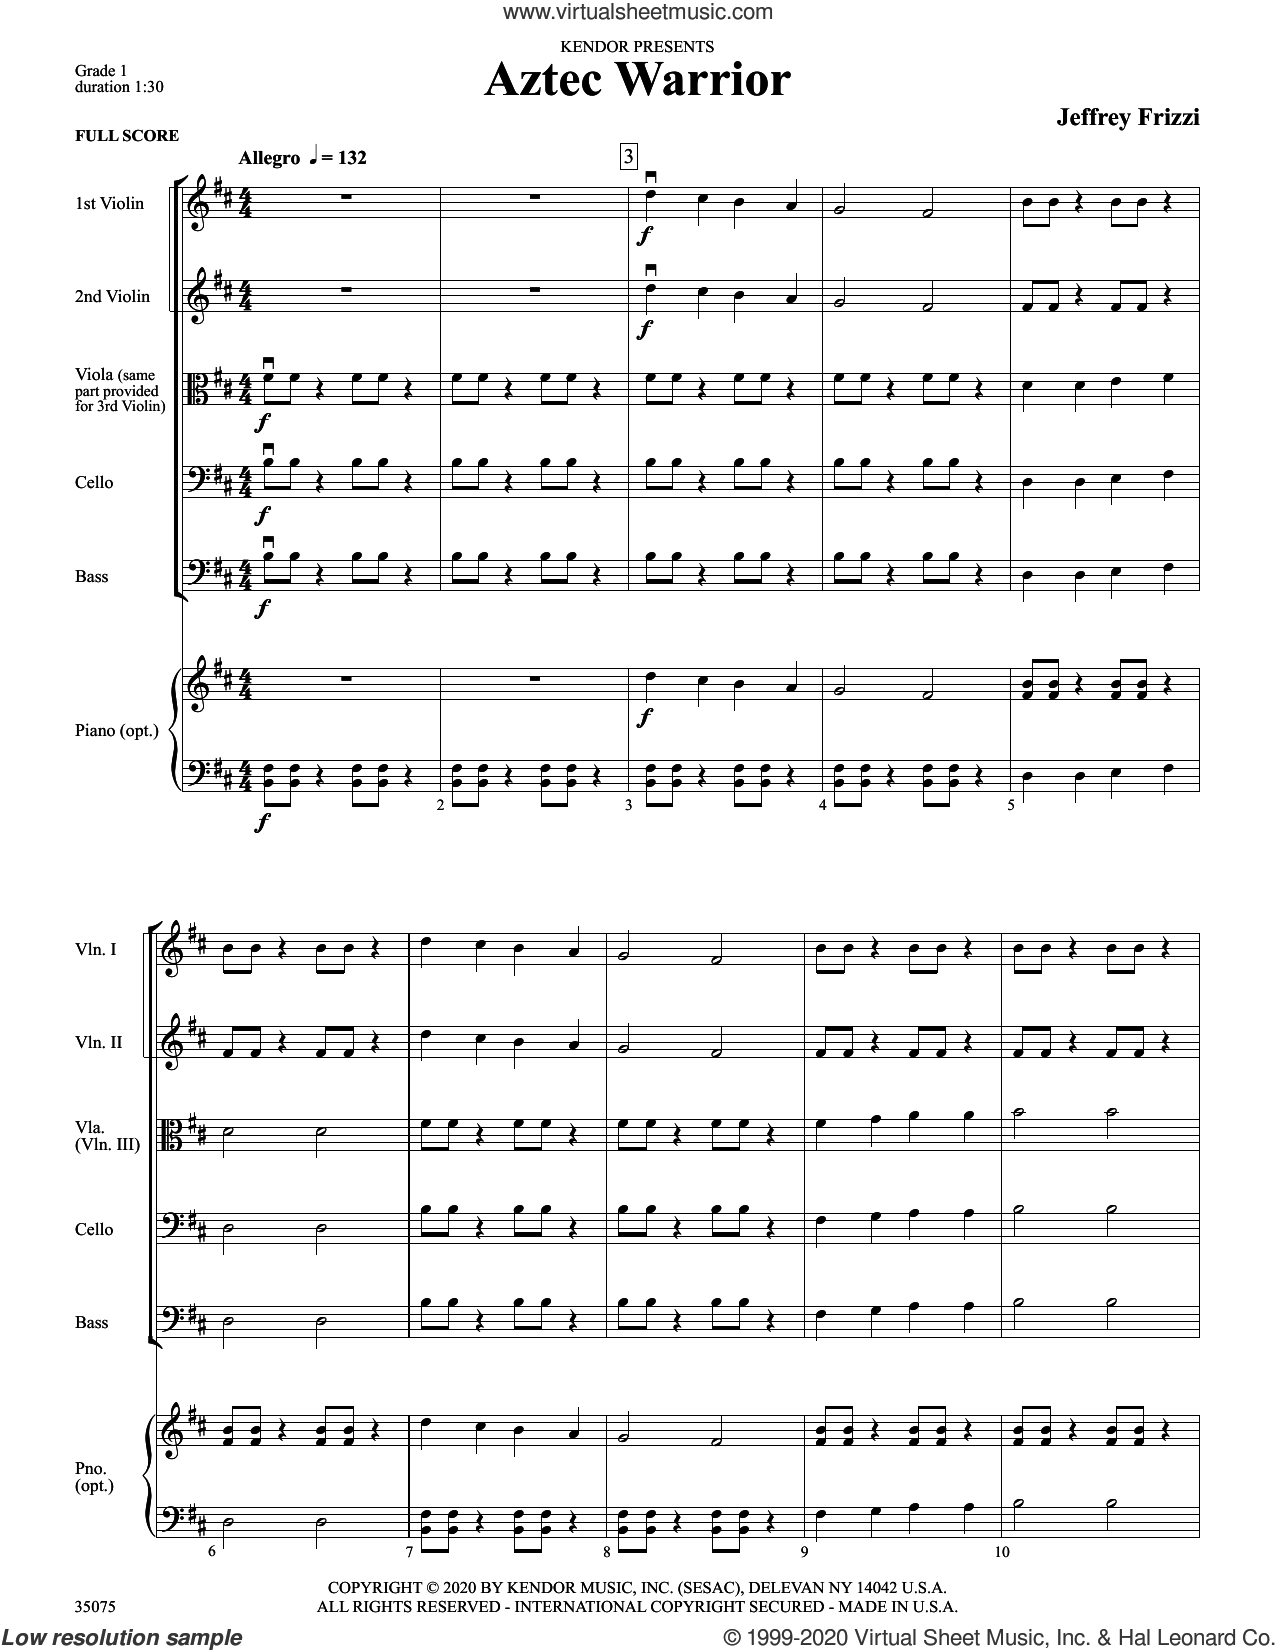 Aztec Warrior (COMPLETE) sheet music for orchestra by Jeff Frizzi, intermediate skill level